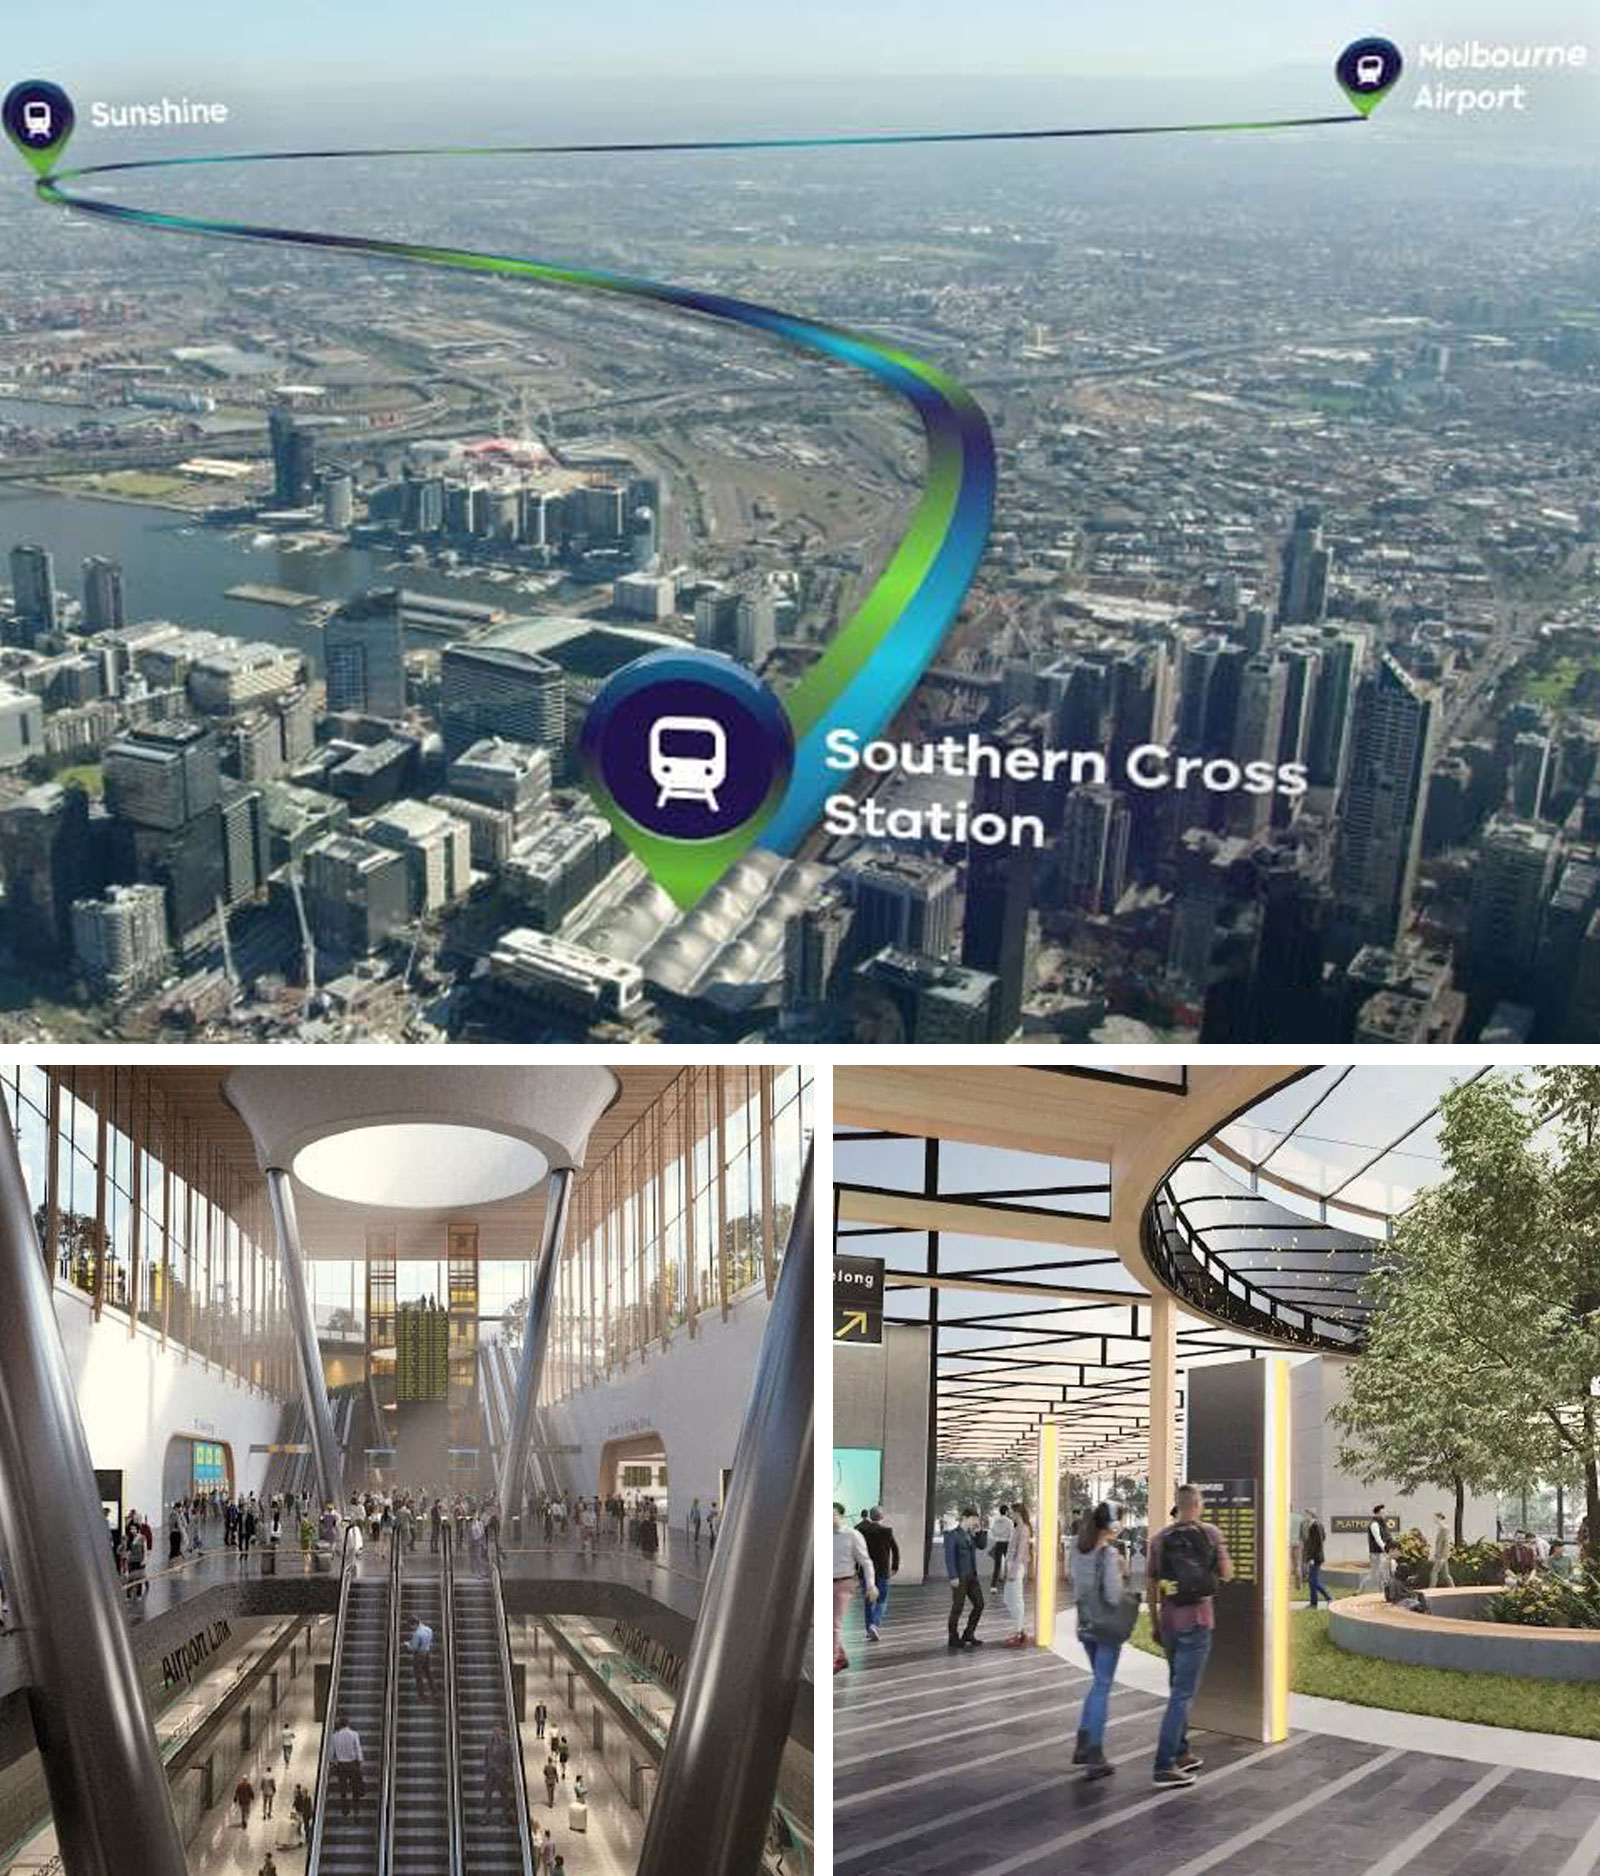 The proposed route for the Melbourne Airport Rail Link (top), the proposed Melbourne Airport station (bottom left) and proposed Sunshine Station (bottom right).